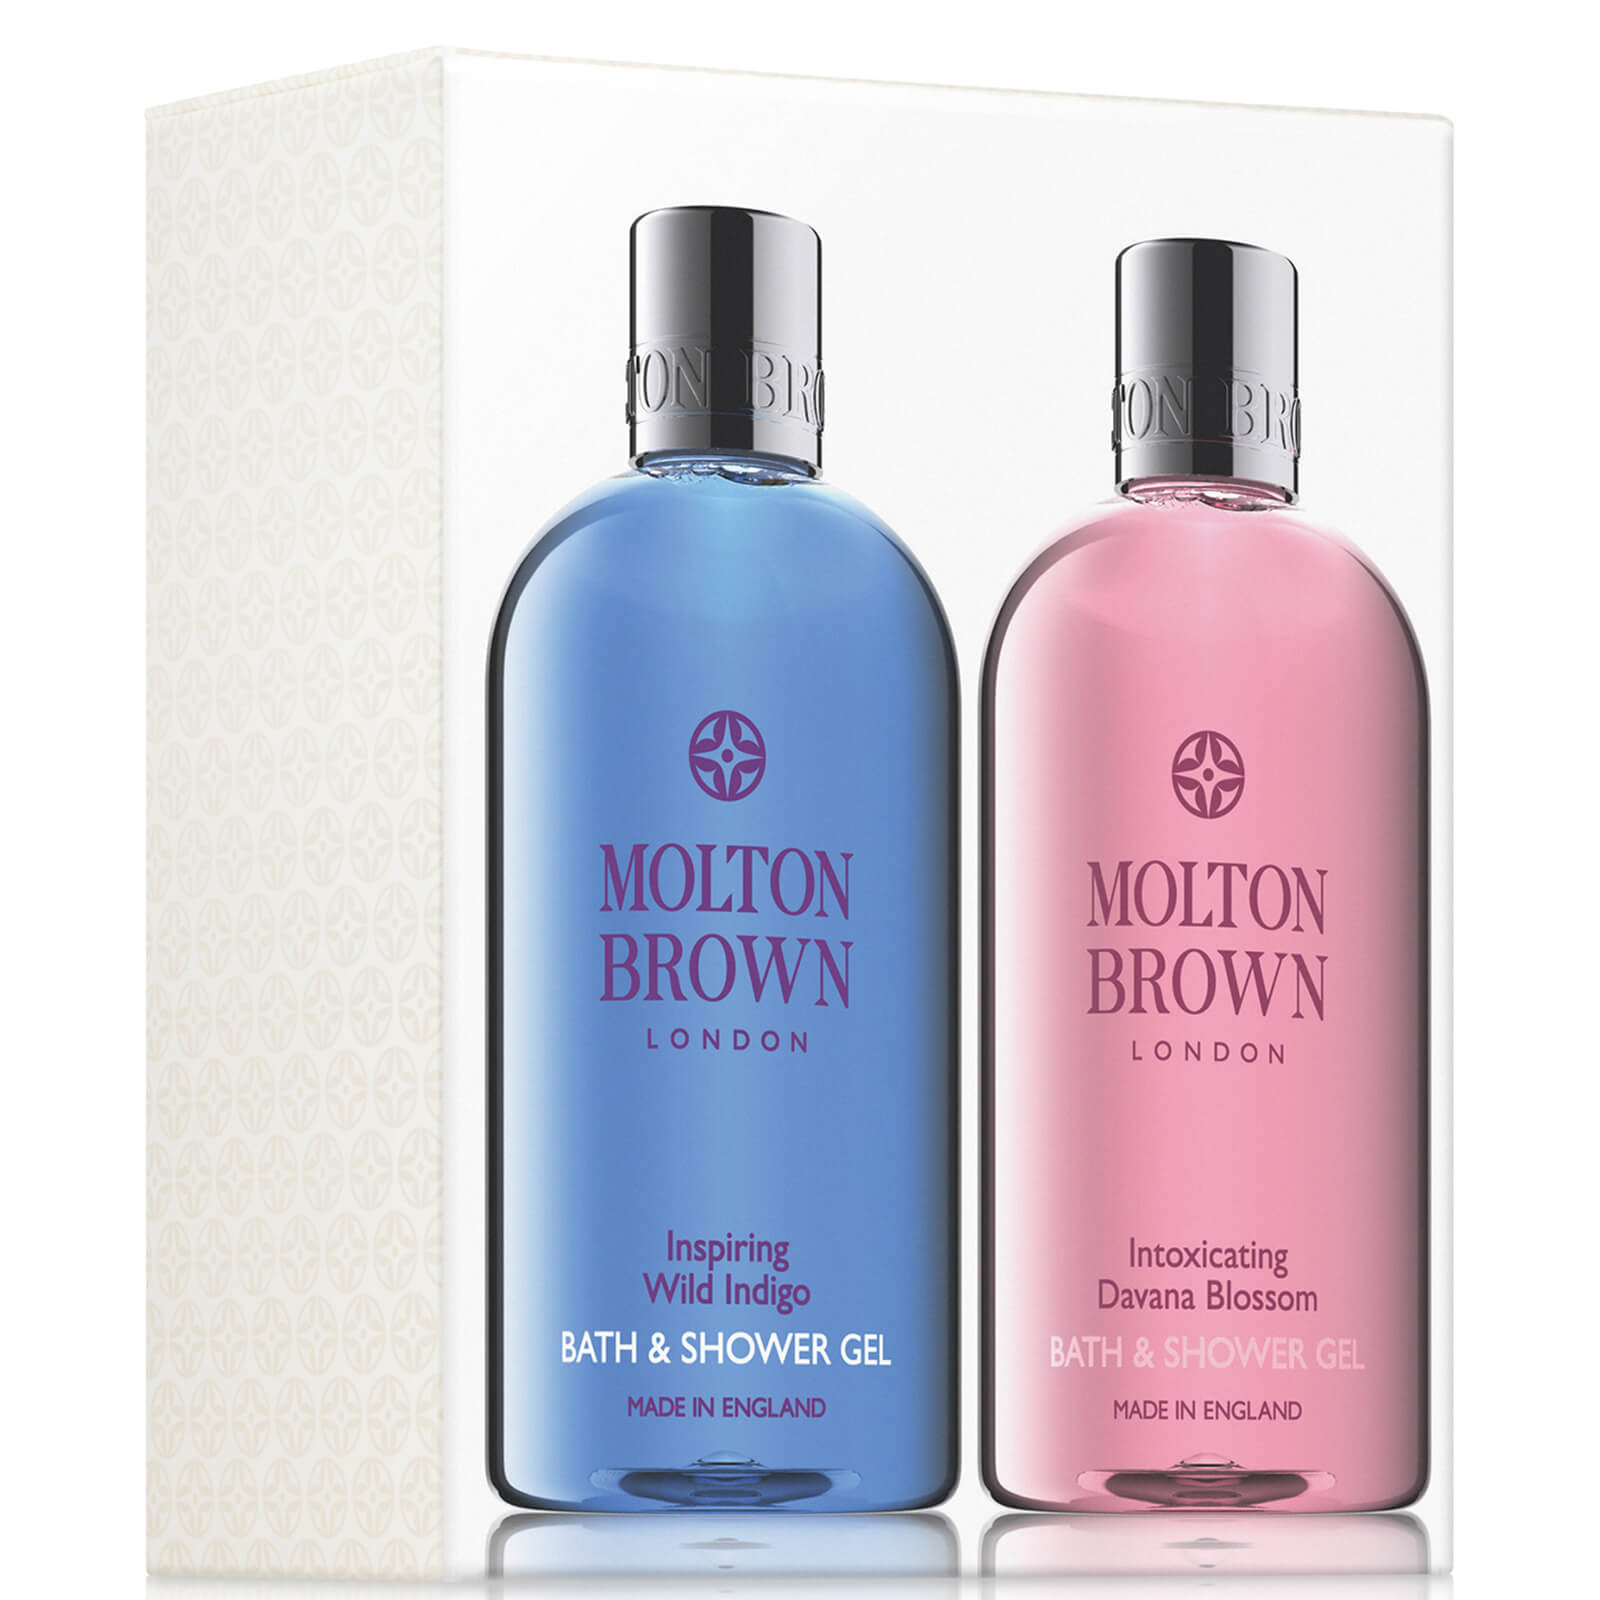 Molton Brown Inspiring Wild Indigo and Intoxicating Davana Blossom Bath and Shower Gel Set 2 x 300ml (Worth £40.00)